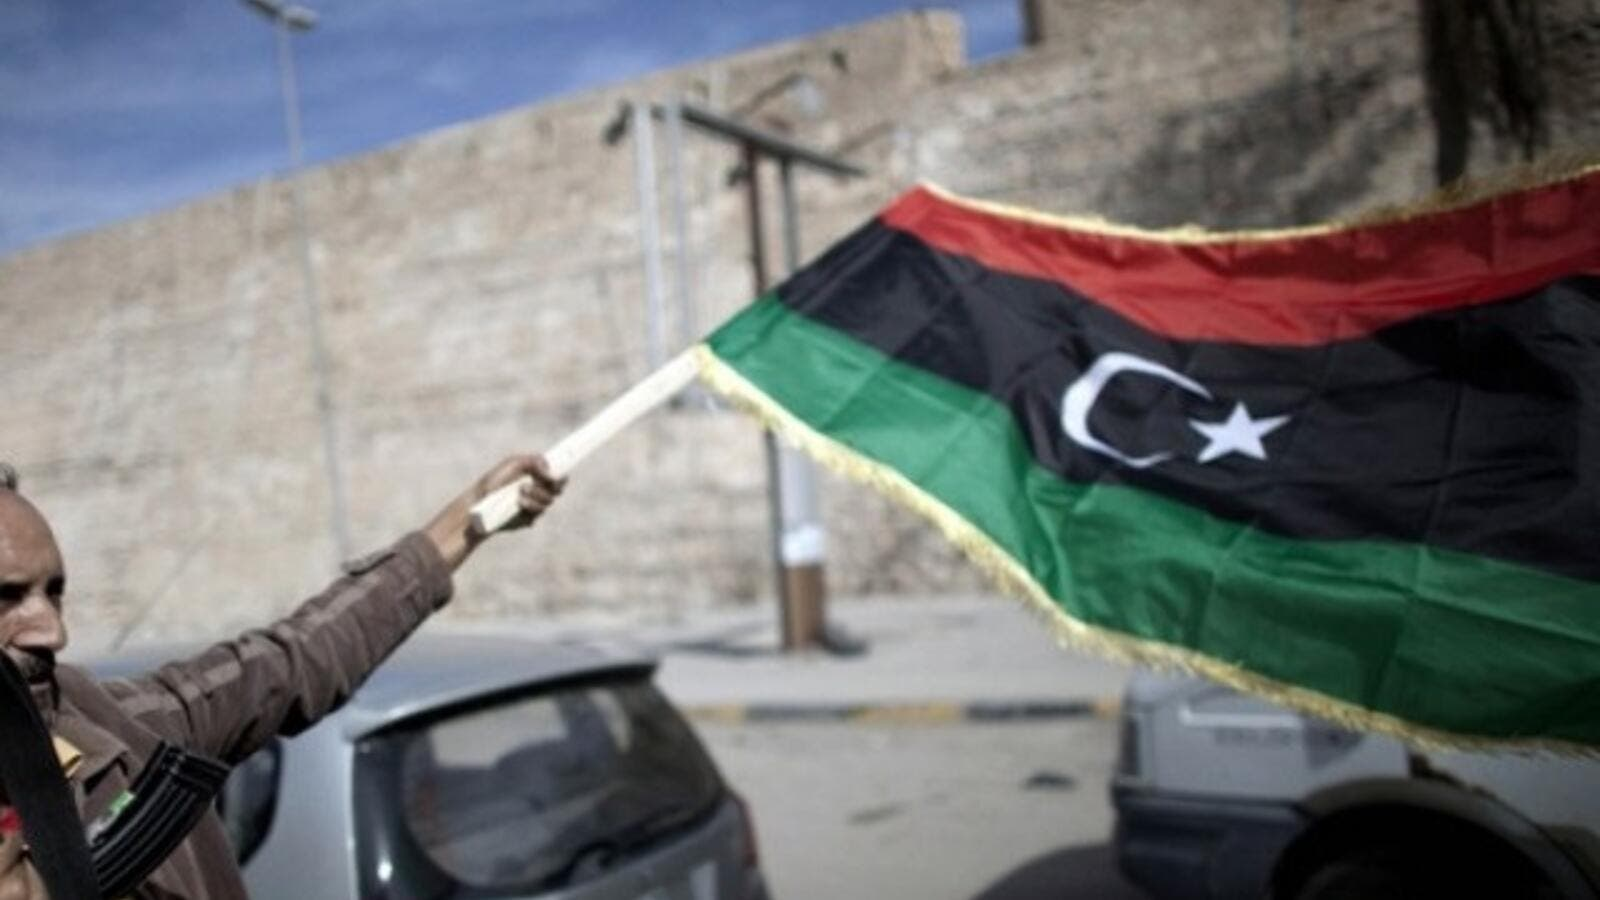 A man waves a Libyan flag in Tripoli. (AFP/File)